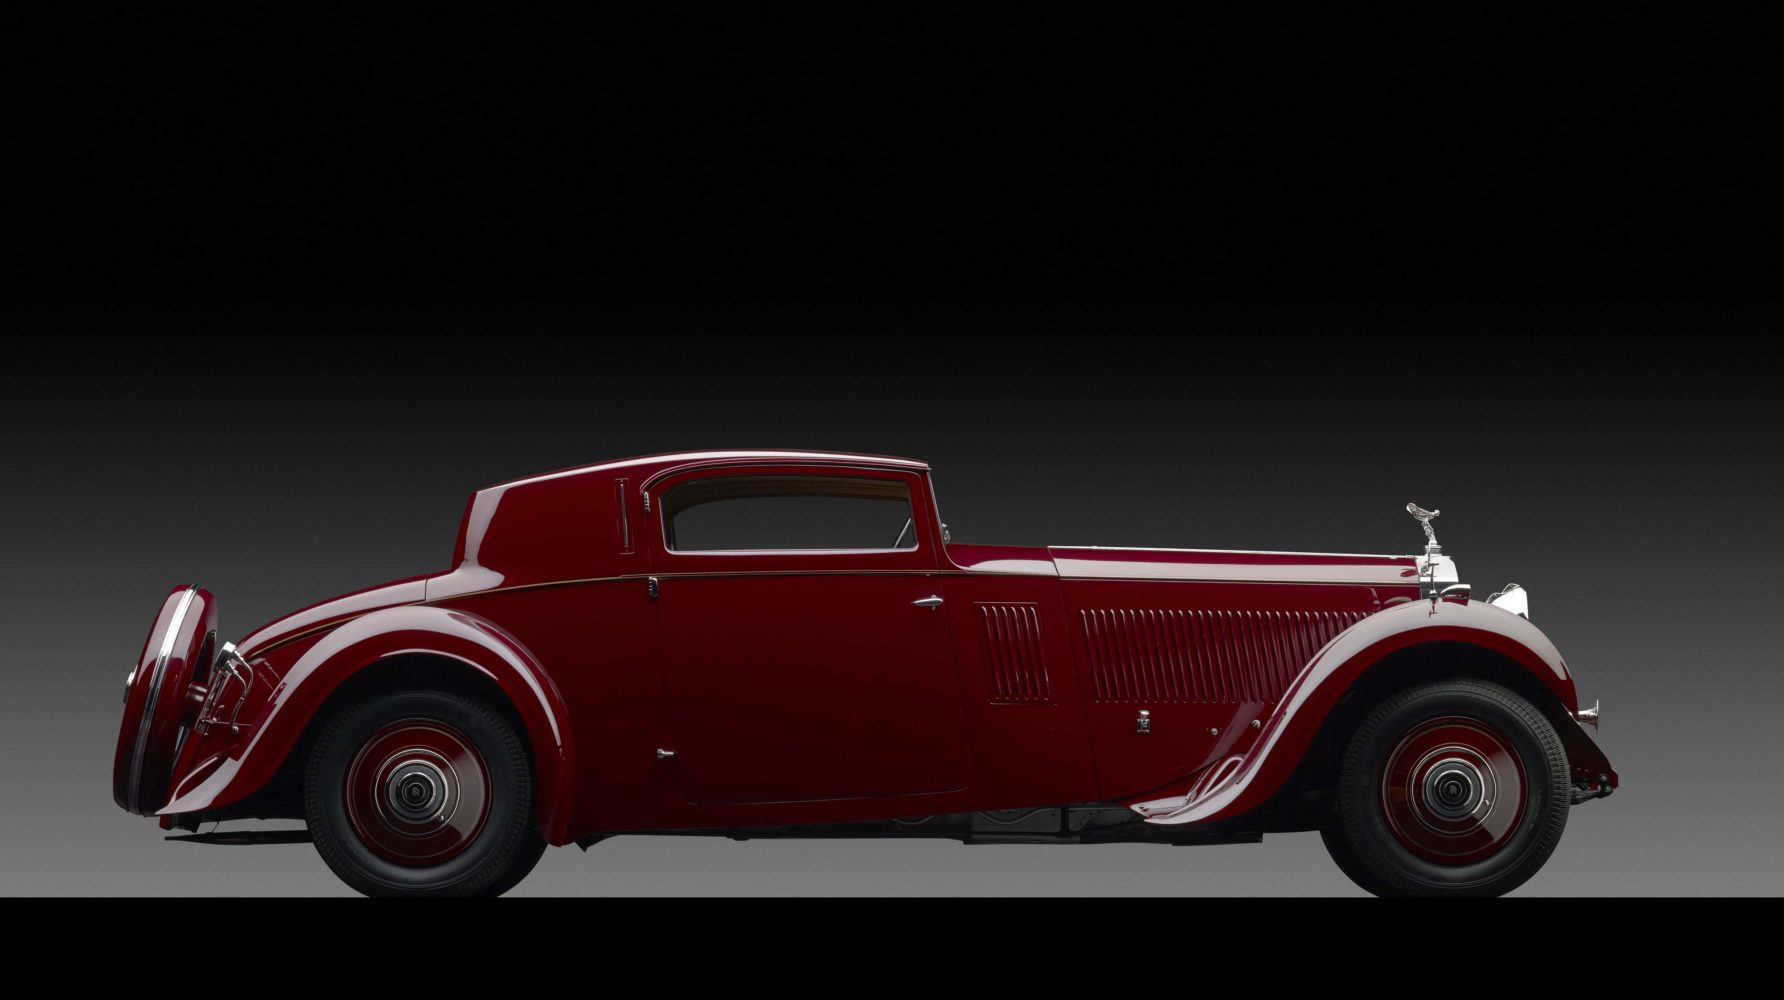 THE COUNTDOWN TO THE 2014 CONCOURS OF ELEGANCE AT HAMPTON COURT PALACE COMMENCES